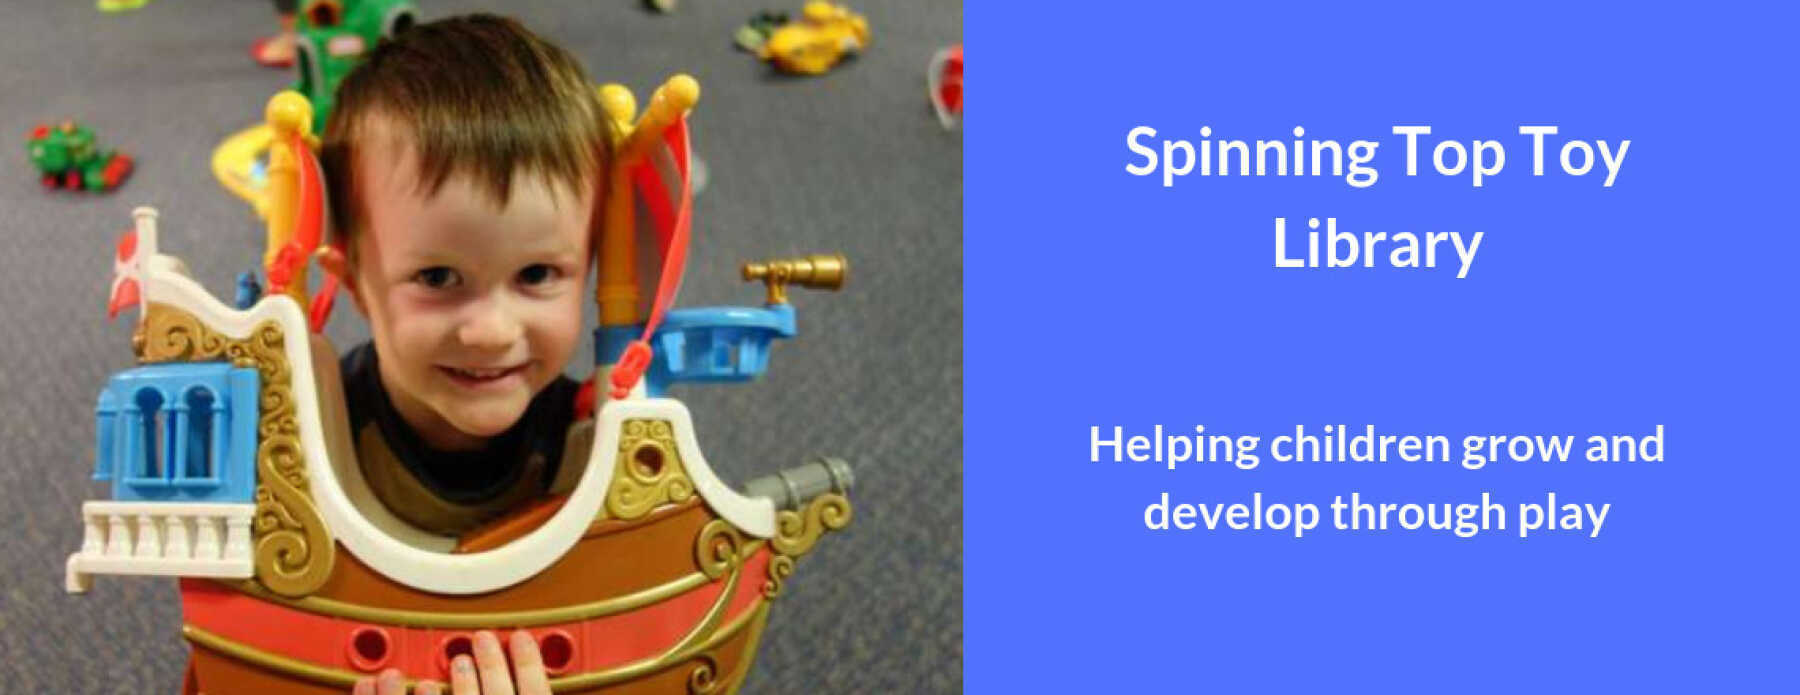 Featured Image for Spinning Top Toy Library